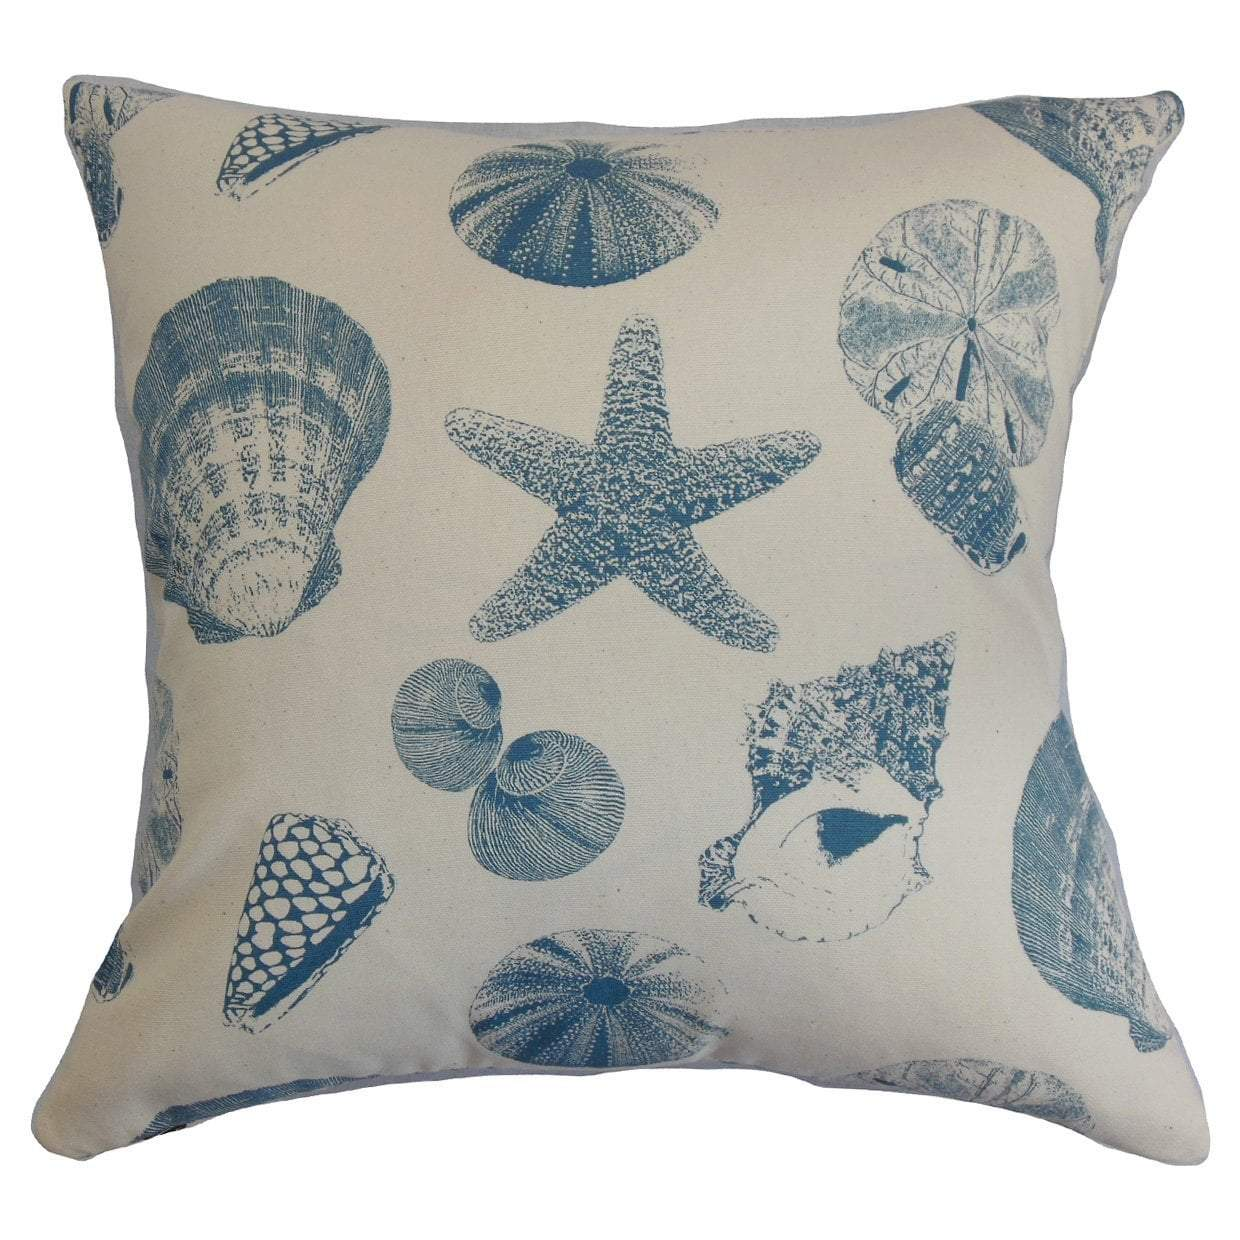 Cotton Graphic Coastal Throw Pillow Cover